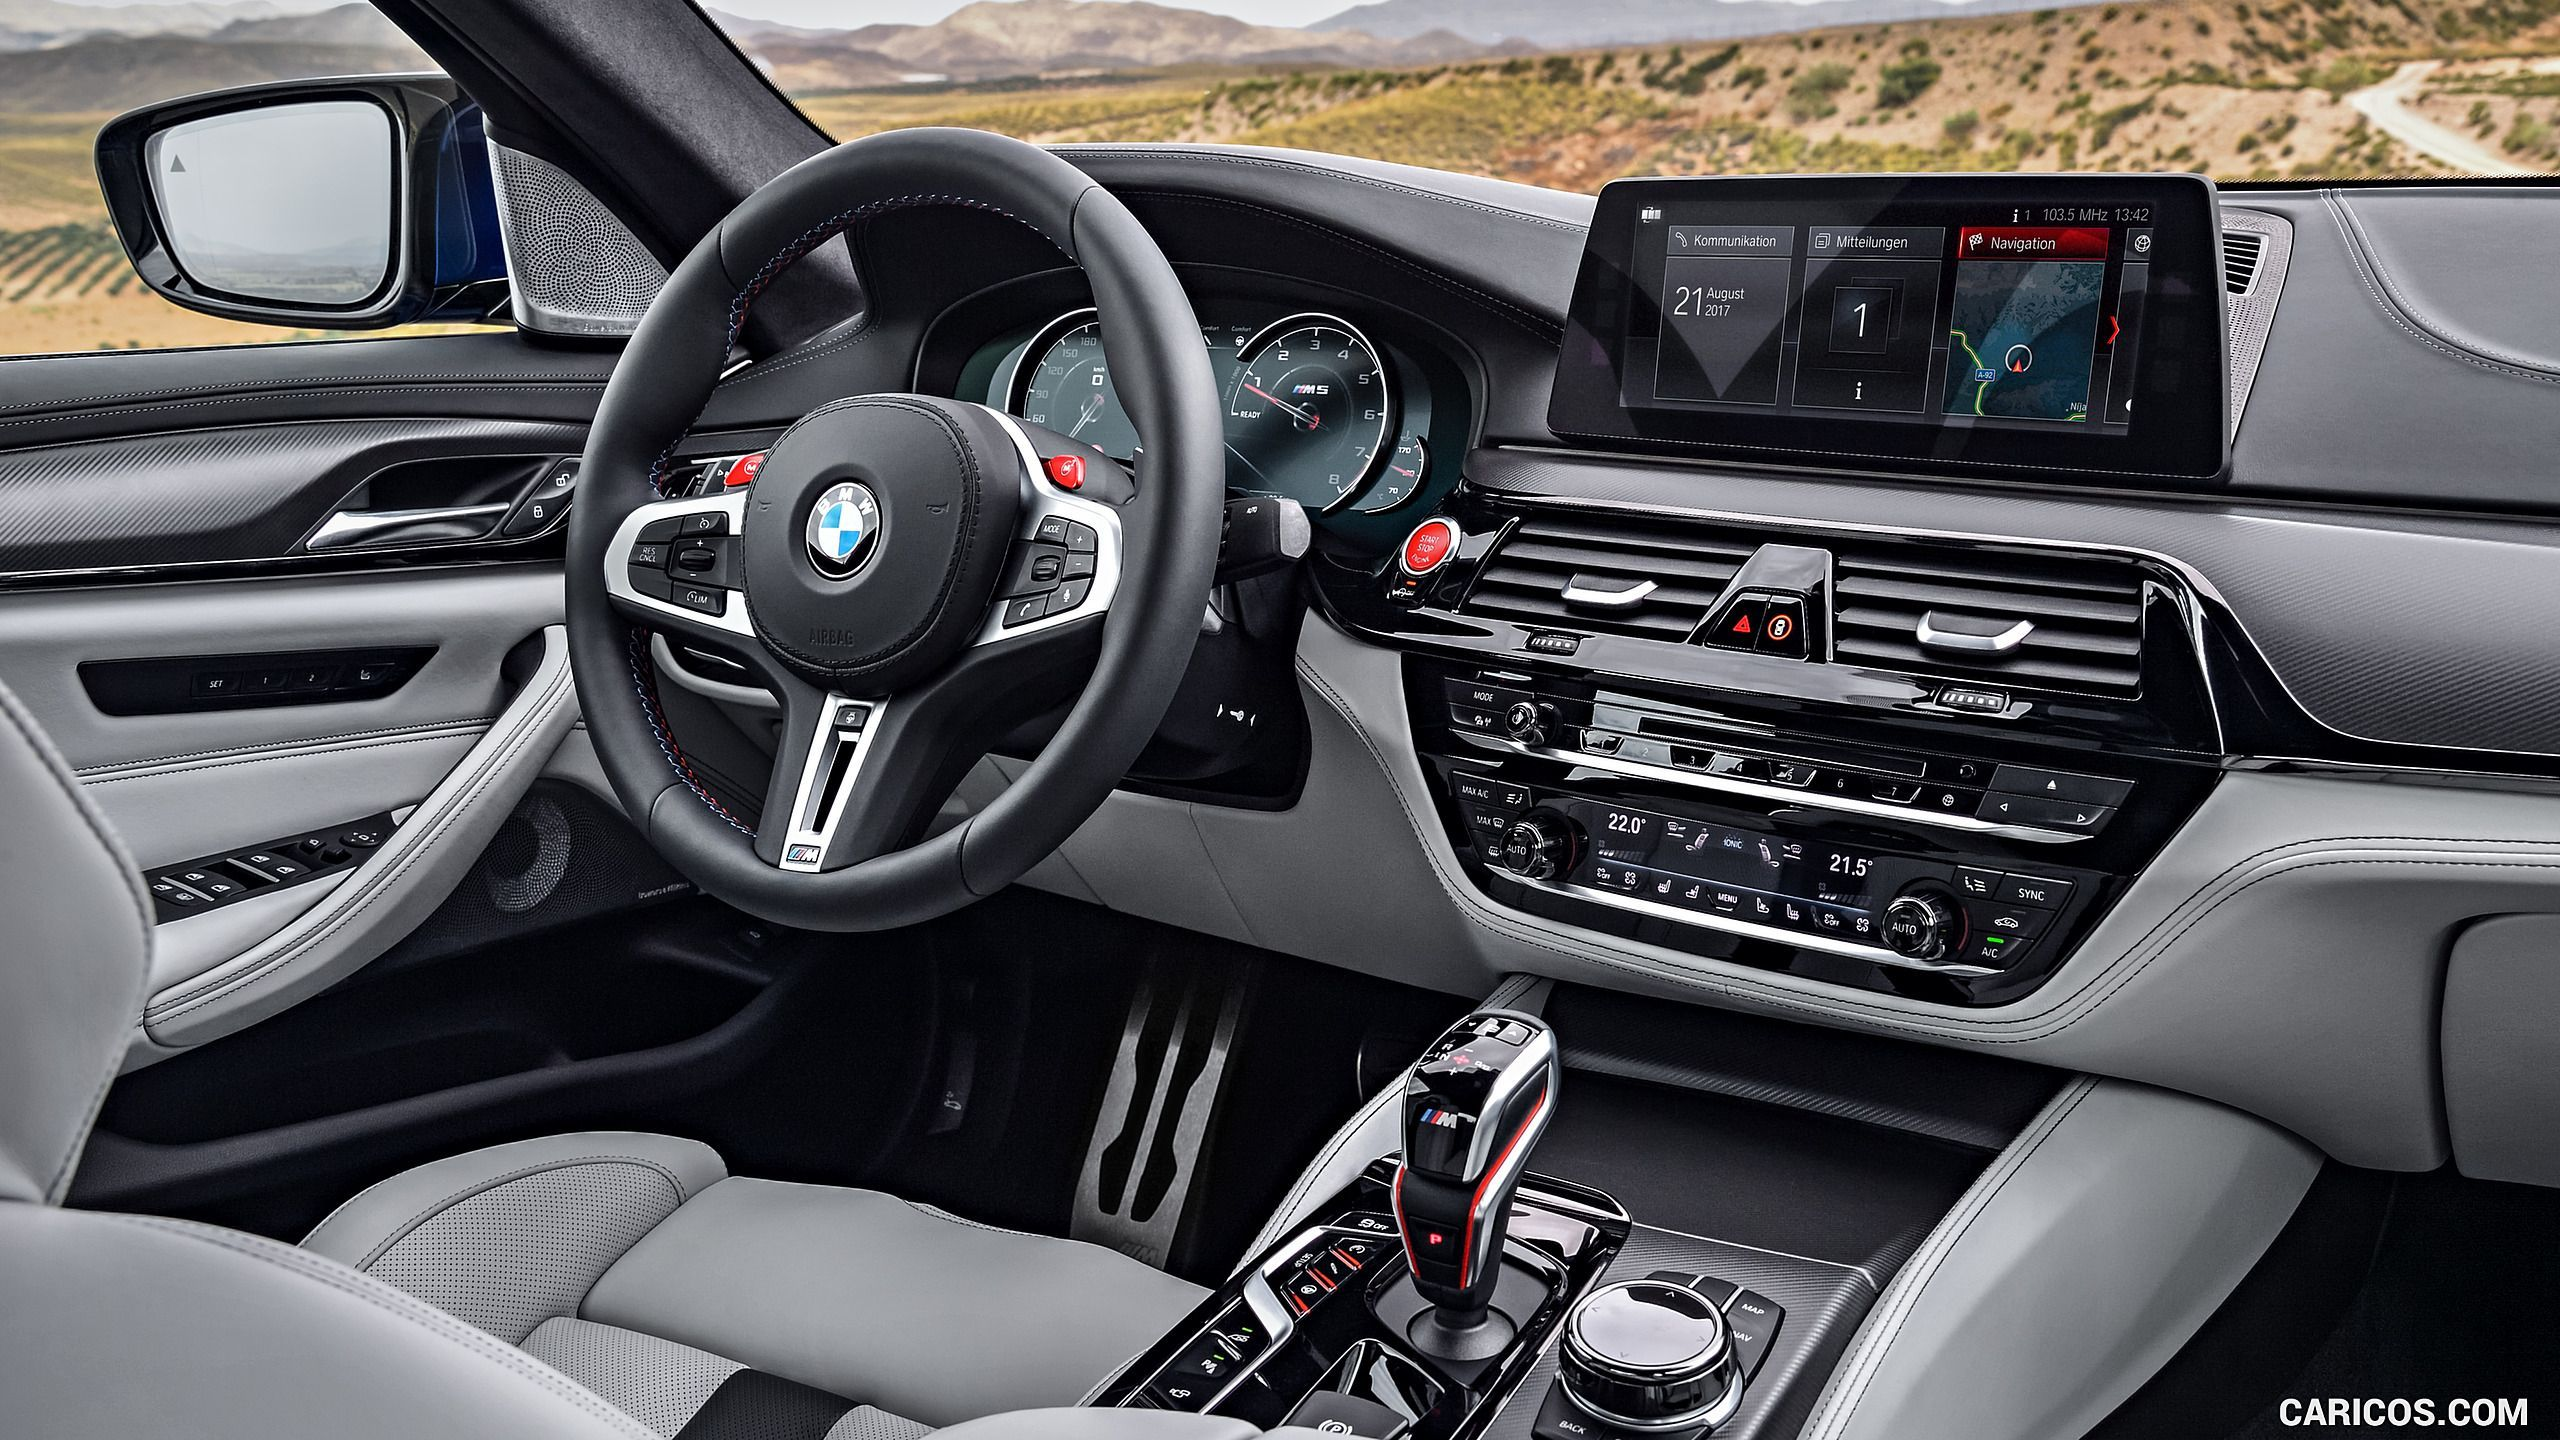 Pin By Mohamed O On Cars With Images Bmw M5 Bmw Suv Bmw X5